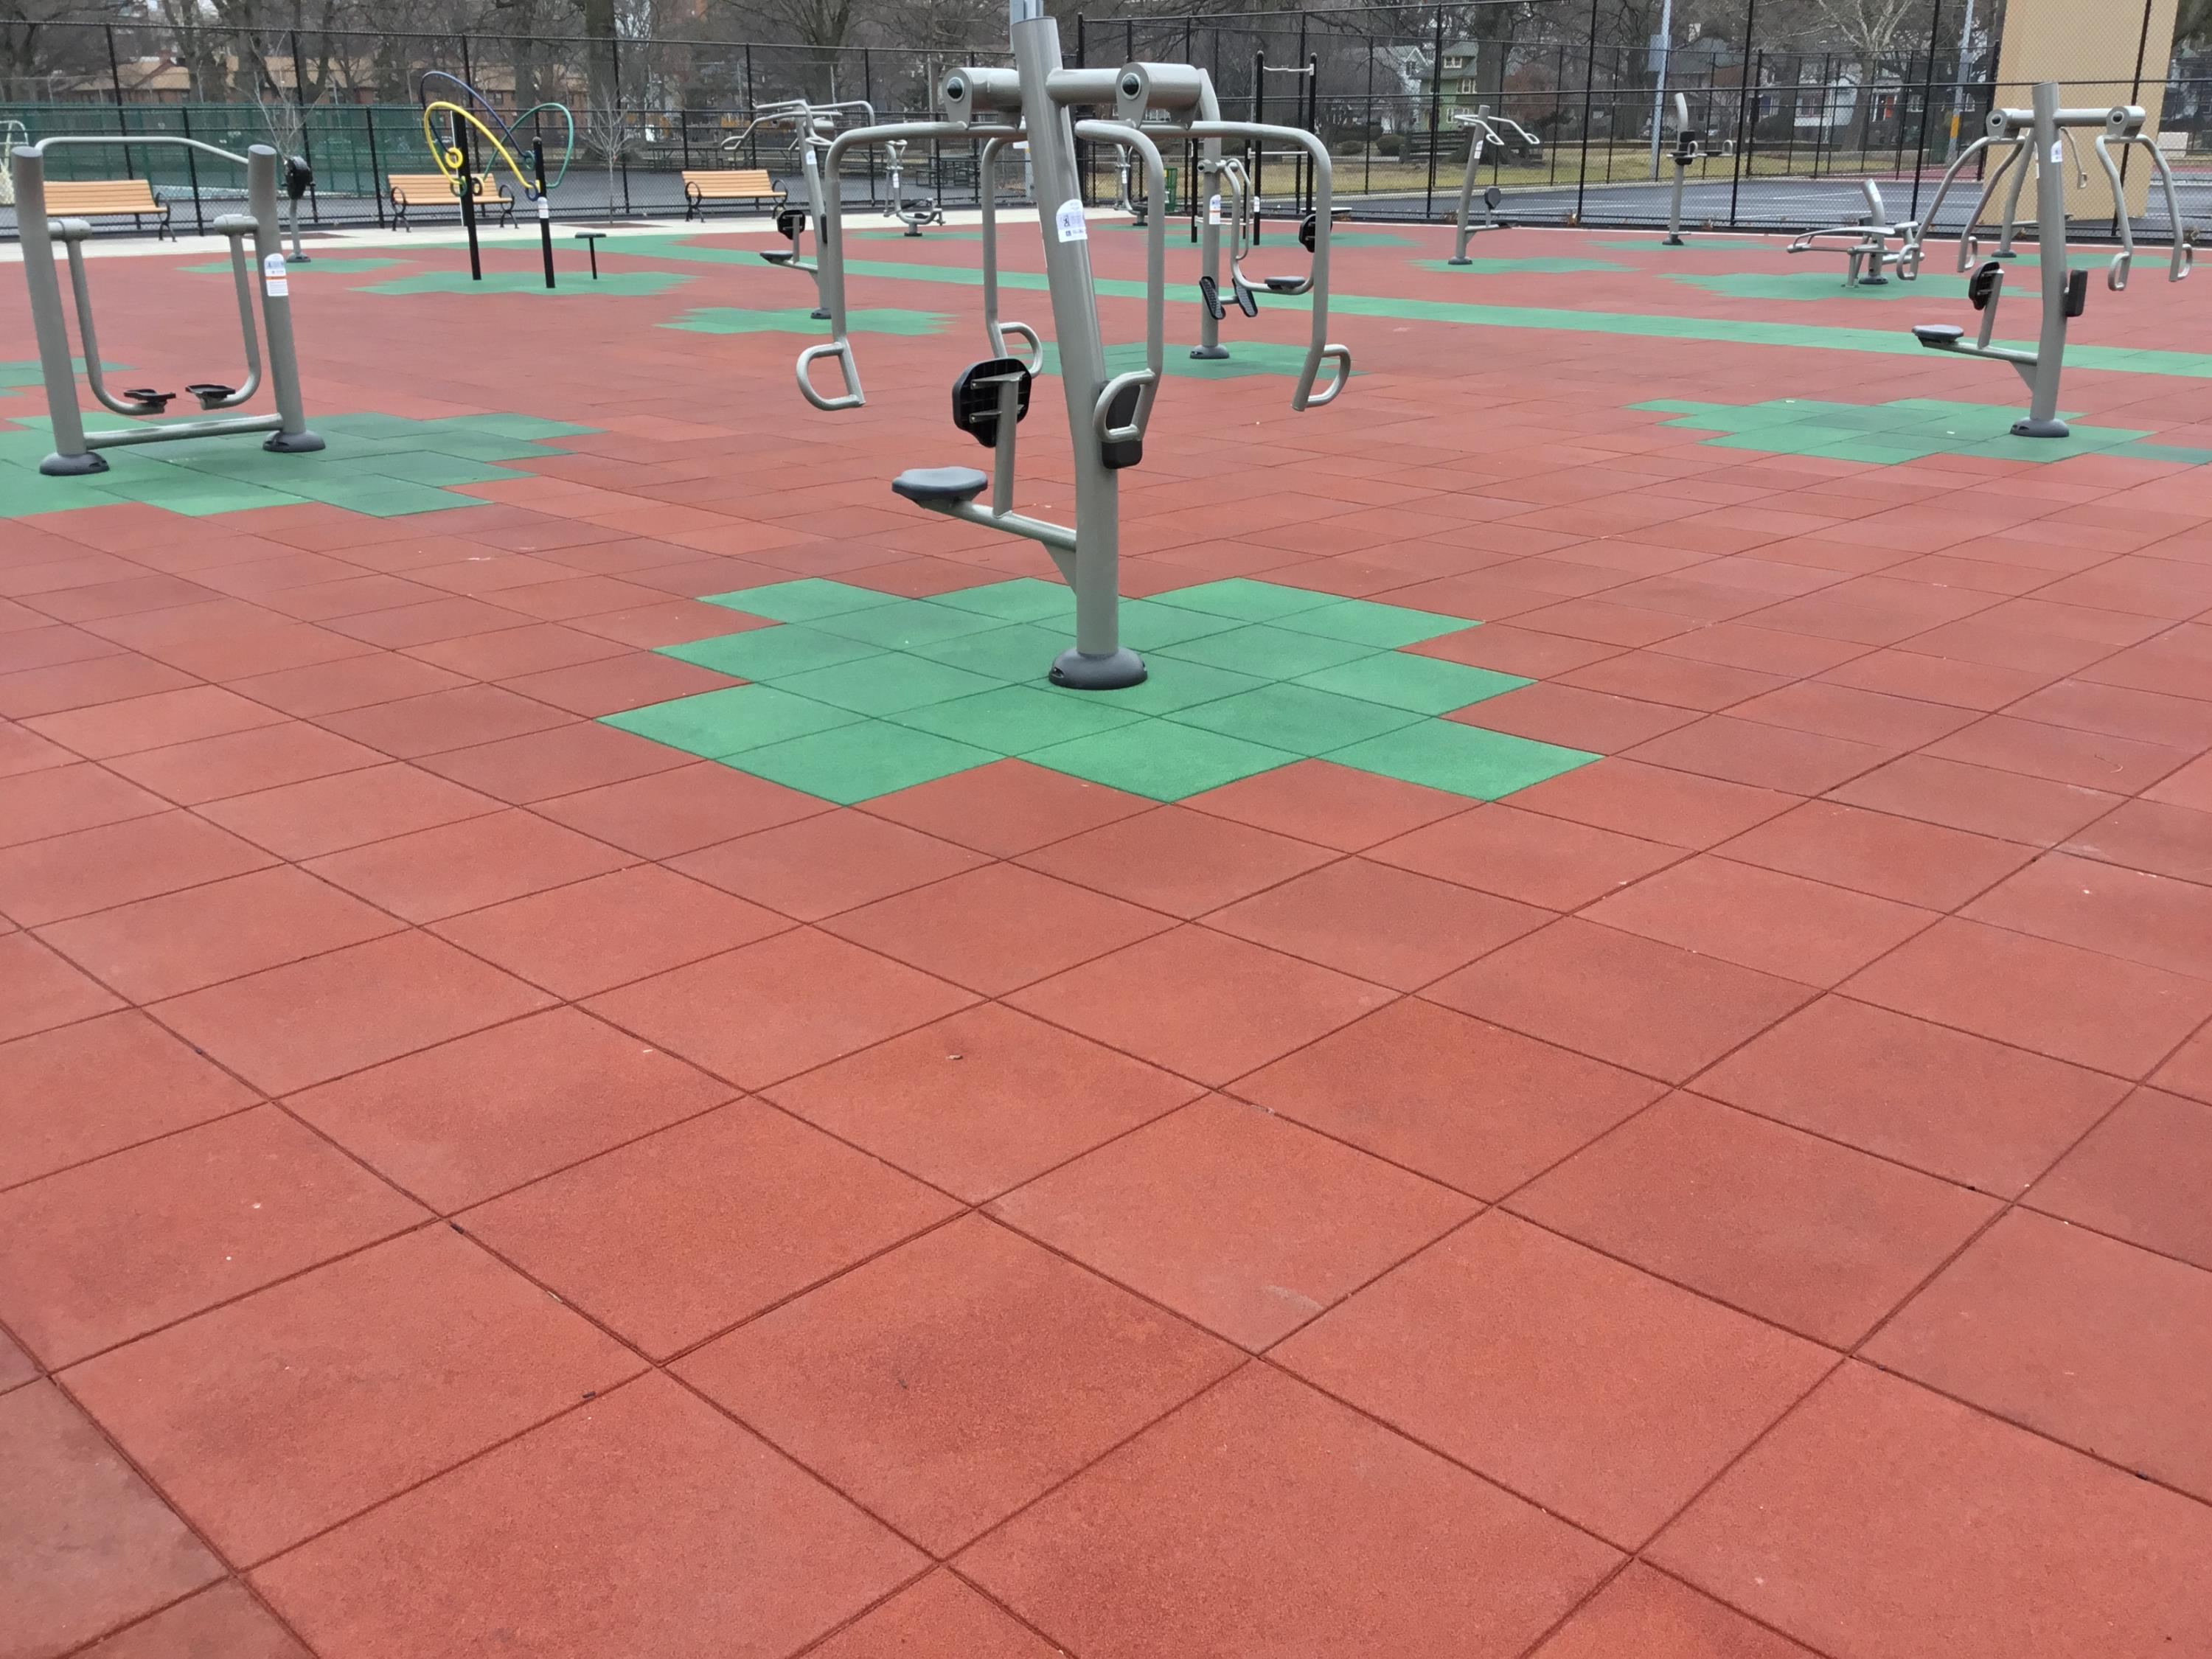 Pigmented Red and Green was selected for the exterior fitness area